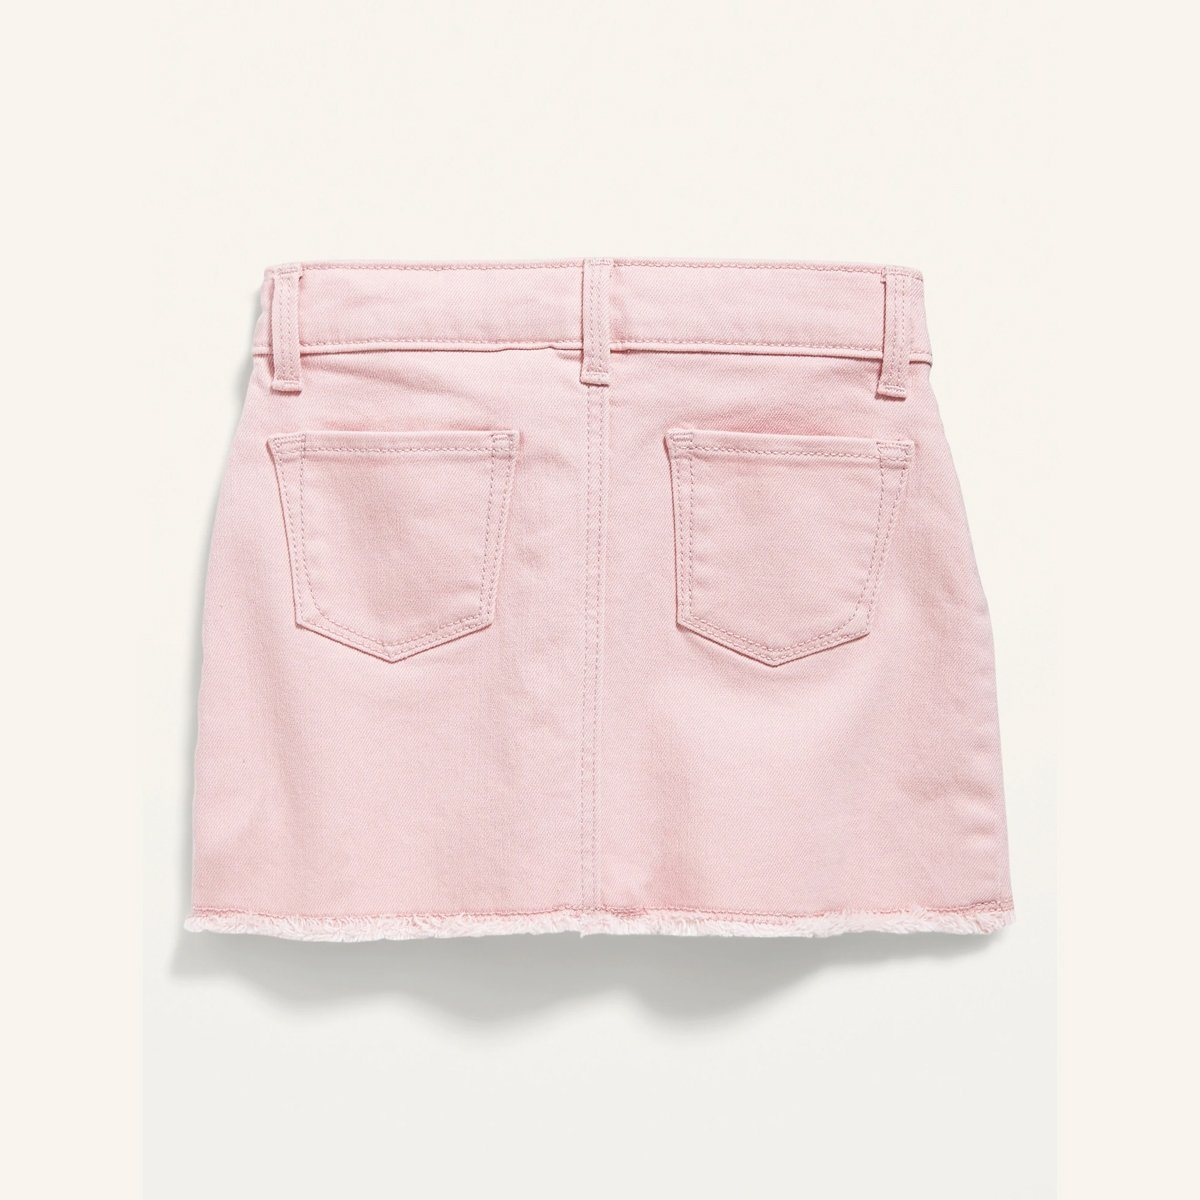 Premium Quality Solid Pink Cotton Twill Hem-pop Skirt For Girls (21062)